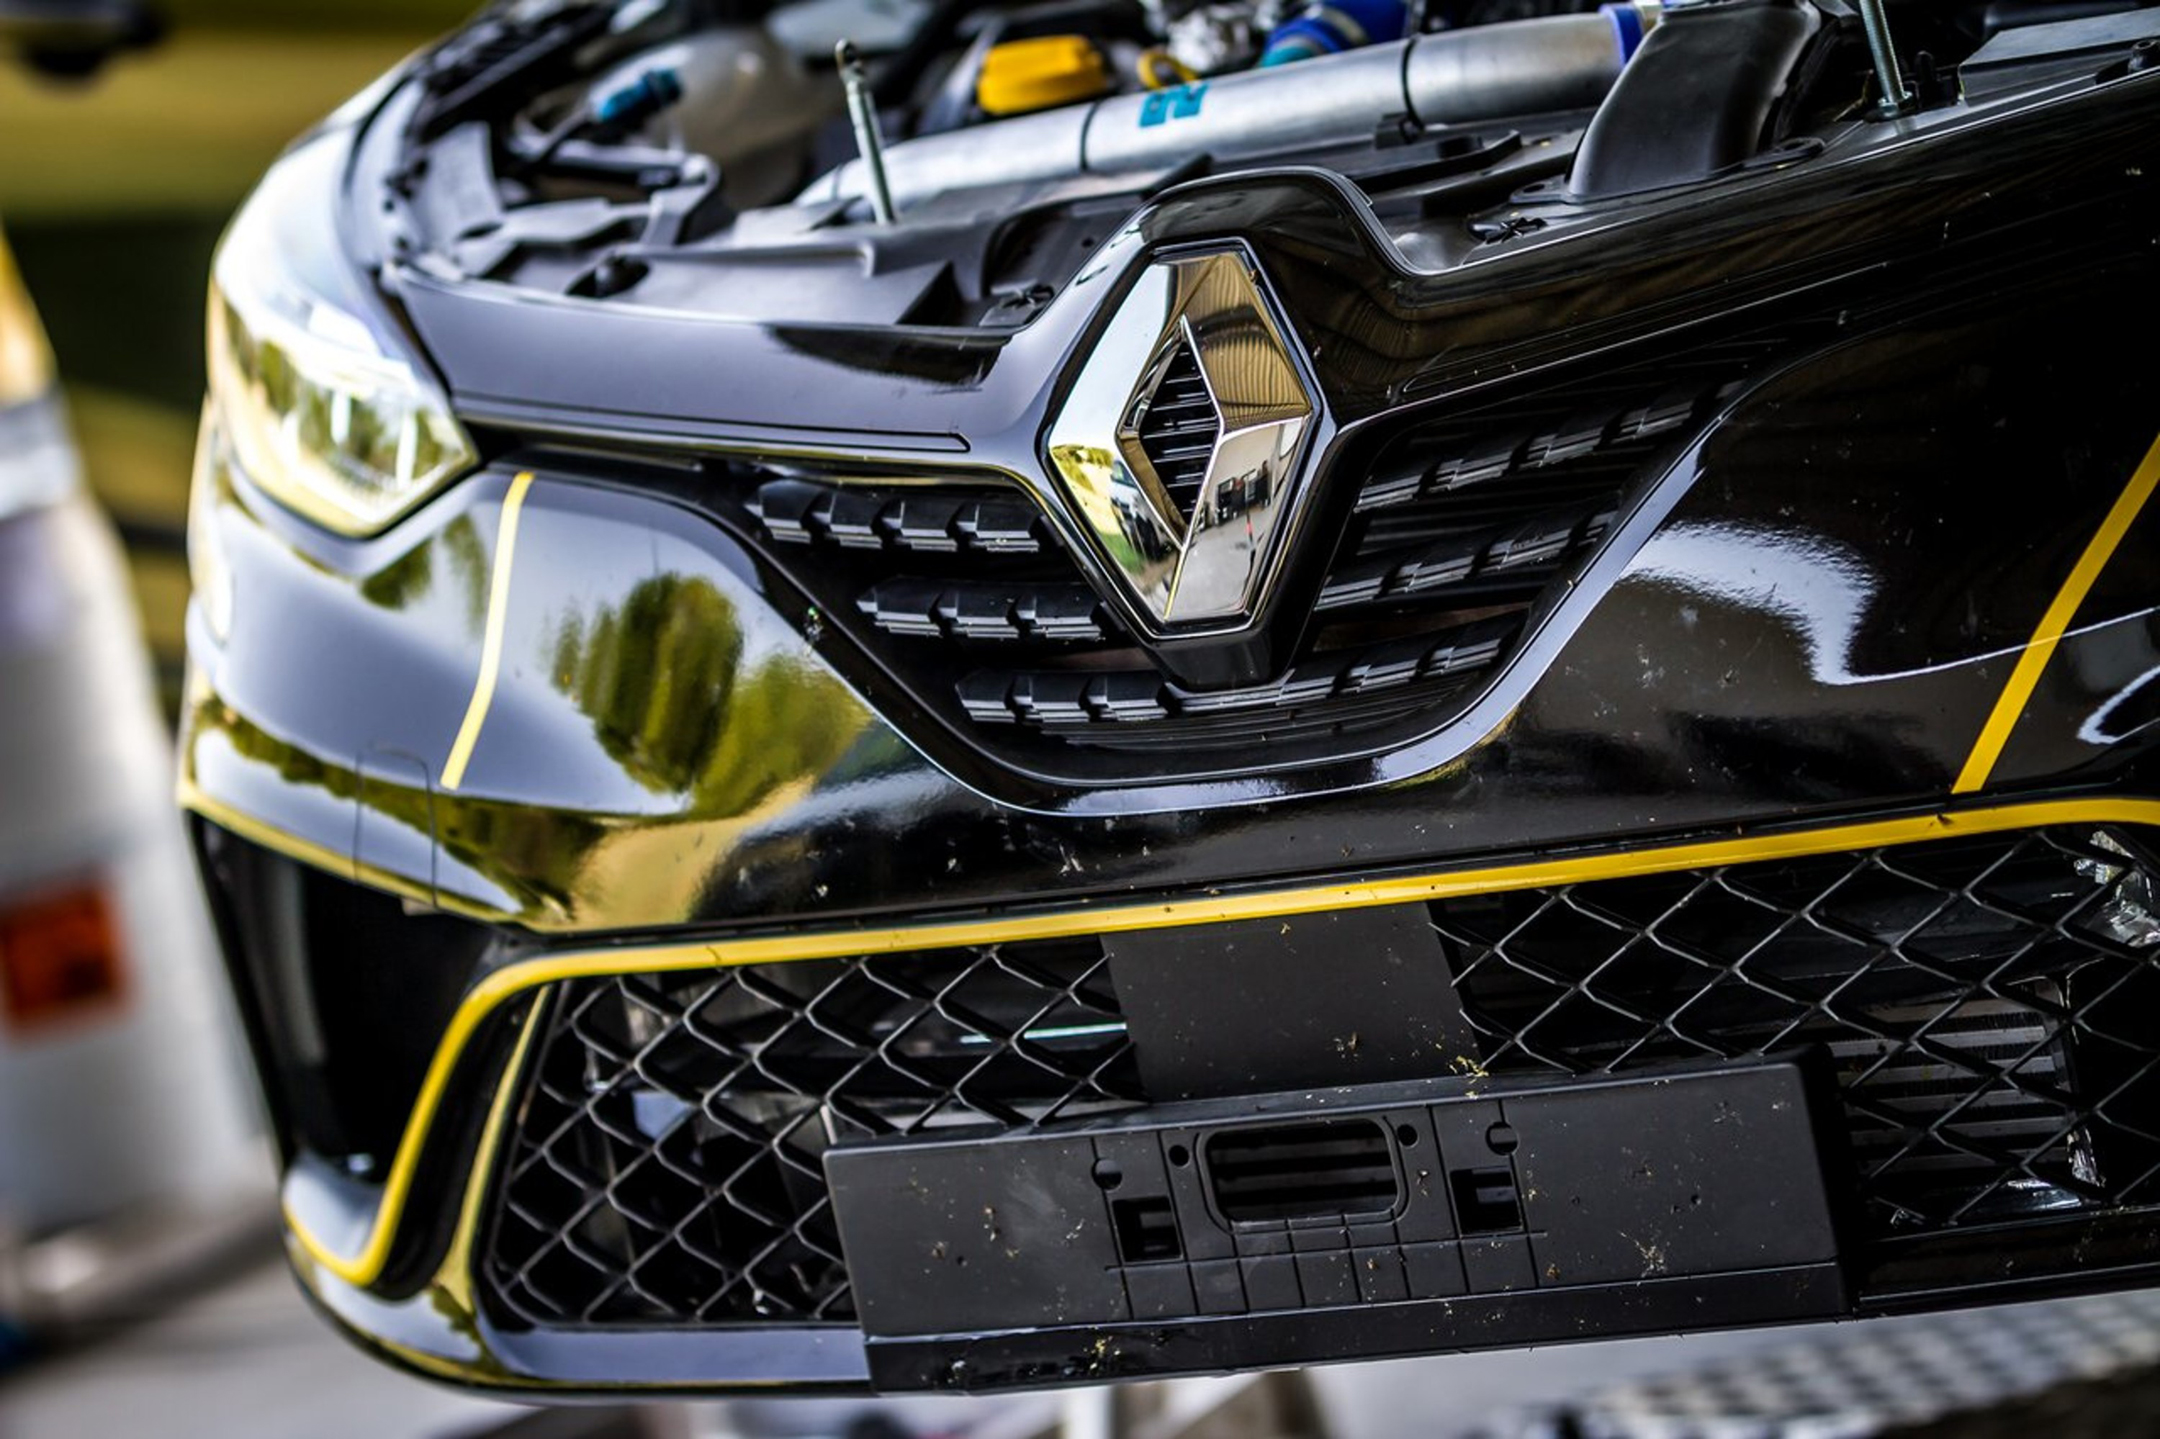 Renault Clio Rally - 2020 - radiator grille / calandre